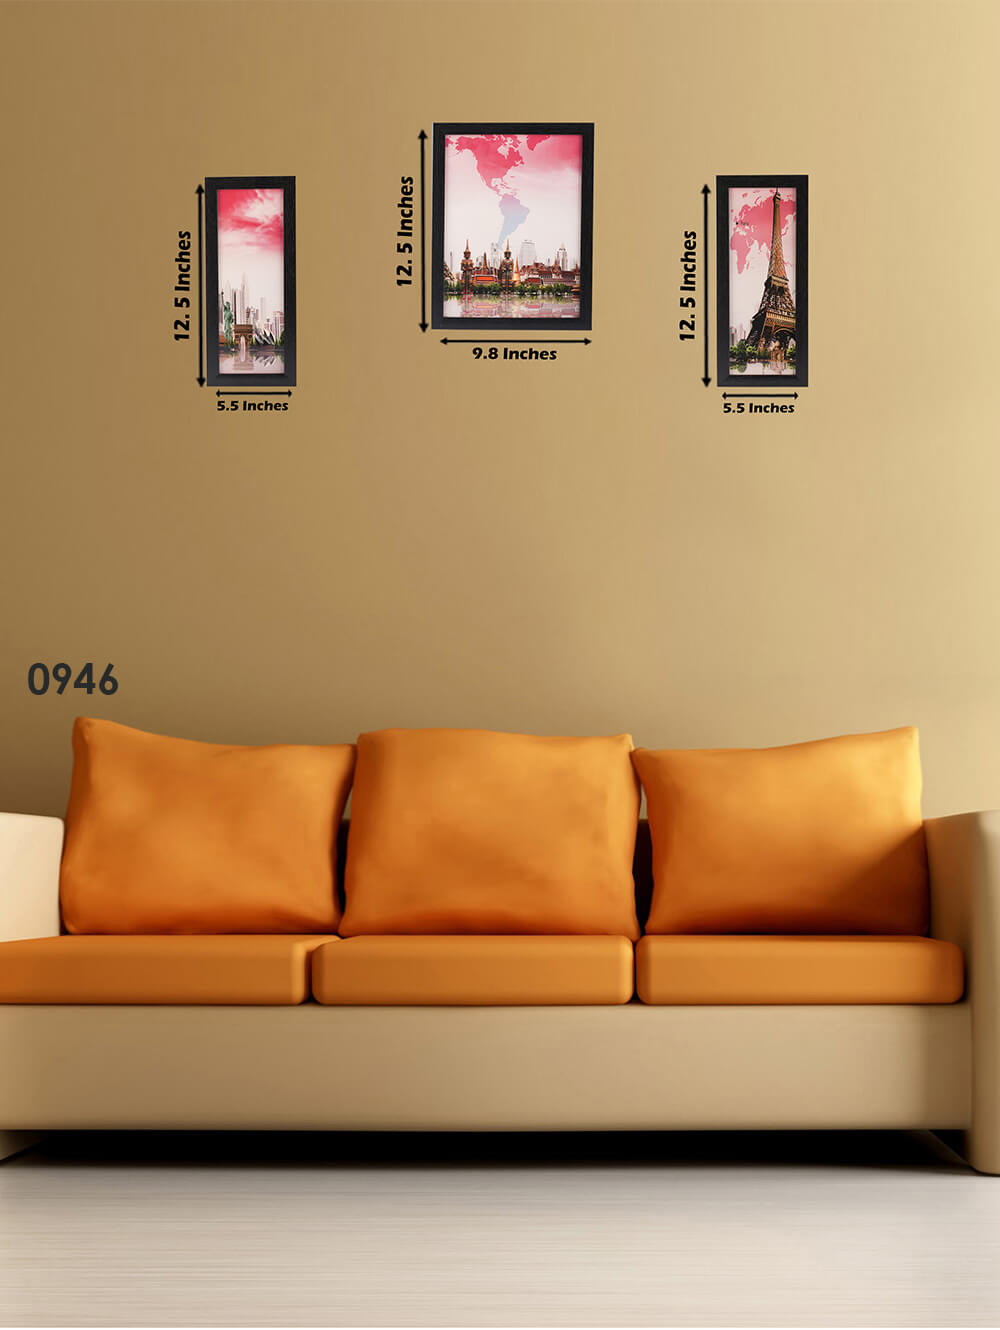 3 Pc Set Of Wall Paintings Without Glass